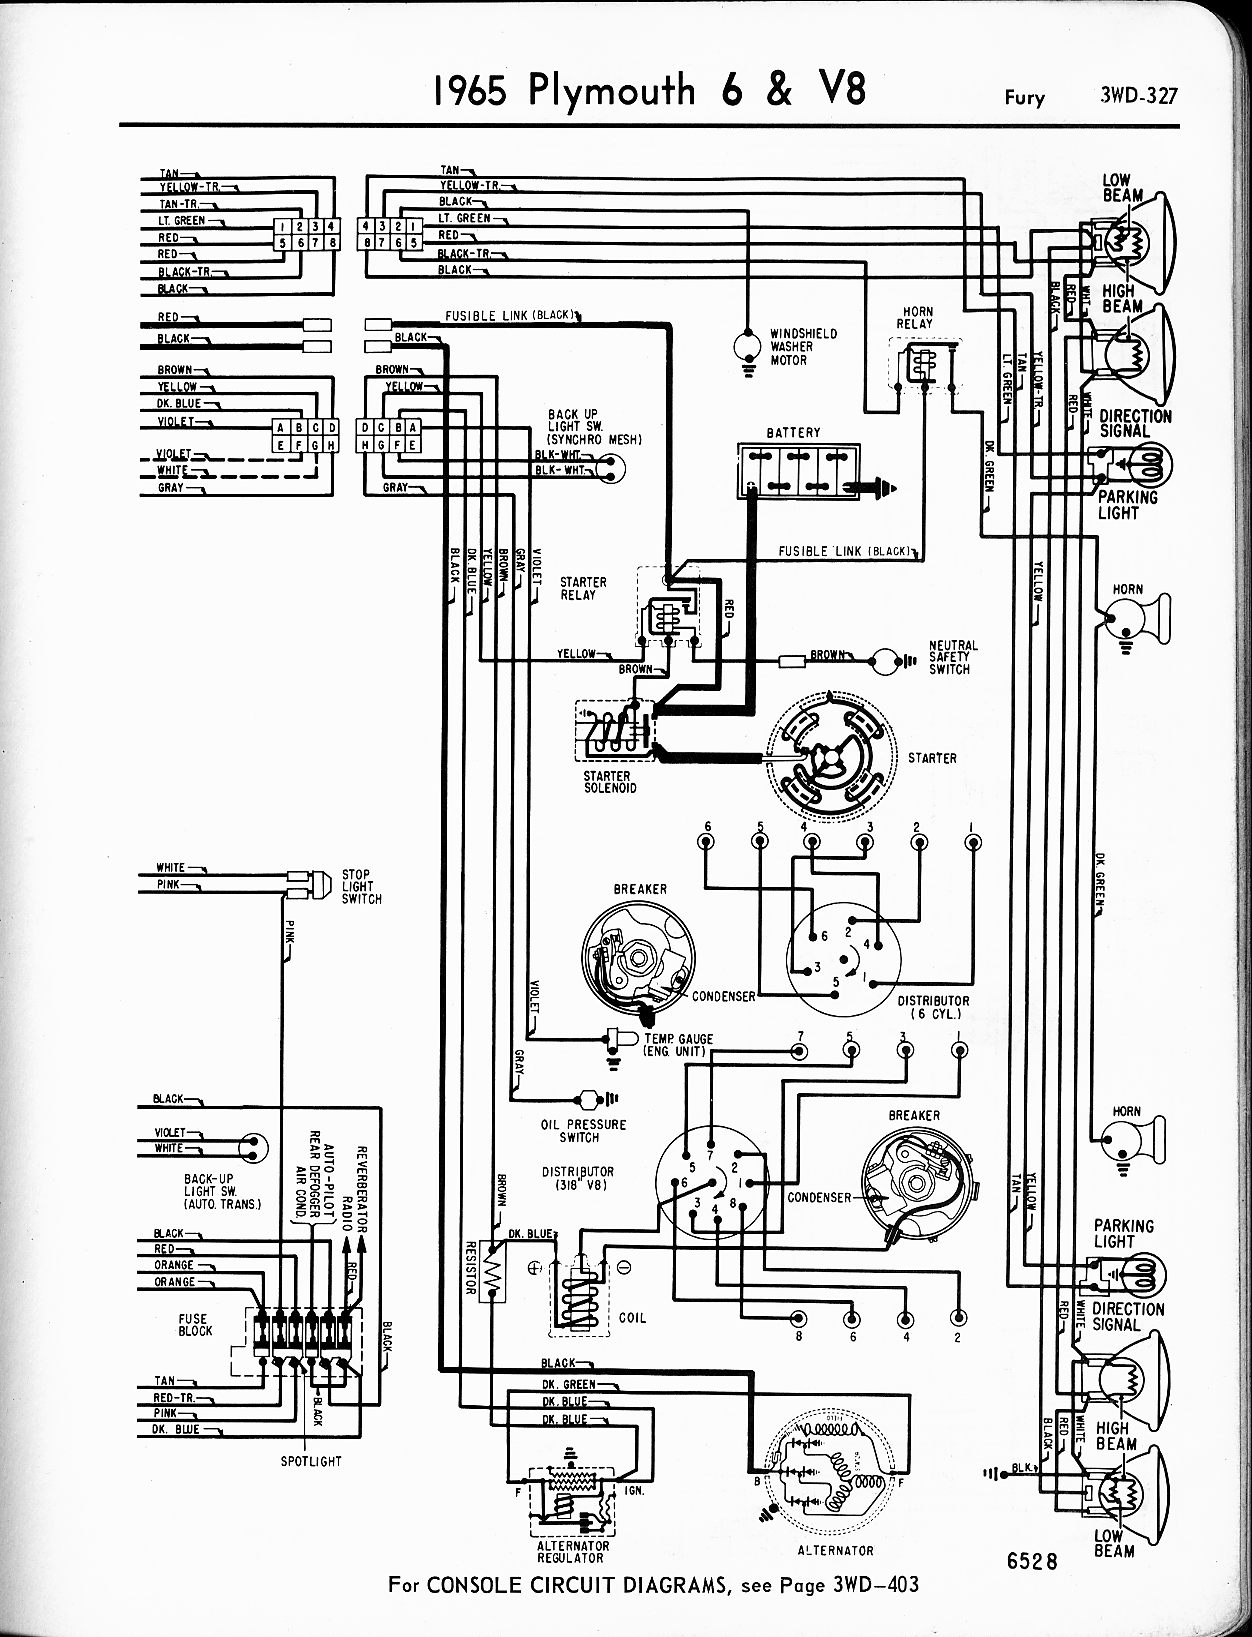 1956 1965 plymouth wiring the old car manual project rh oldcarmanualproject com Wire Two Mollar Plymouth Wiring Diagrams Wire Two Mollar Plymouth Wiring Diagrams